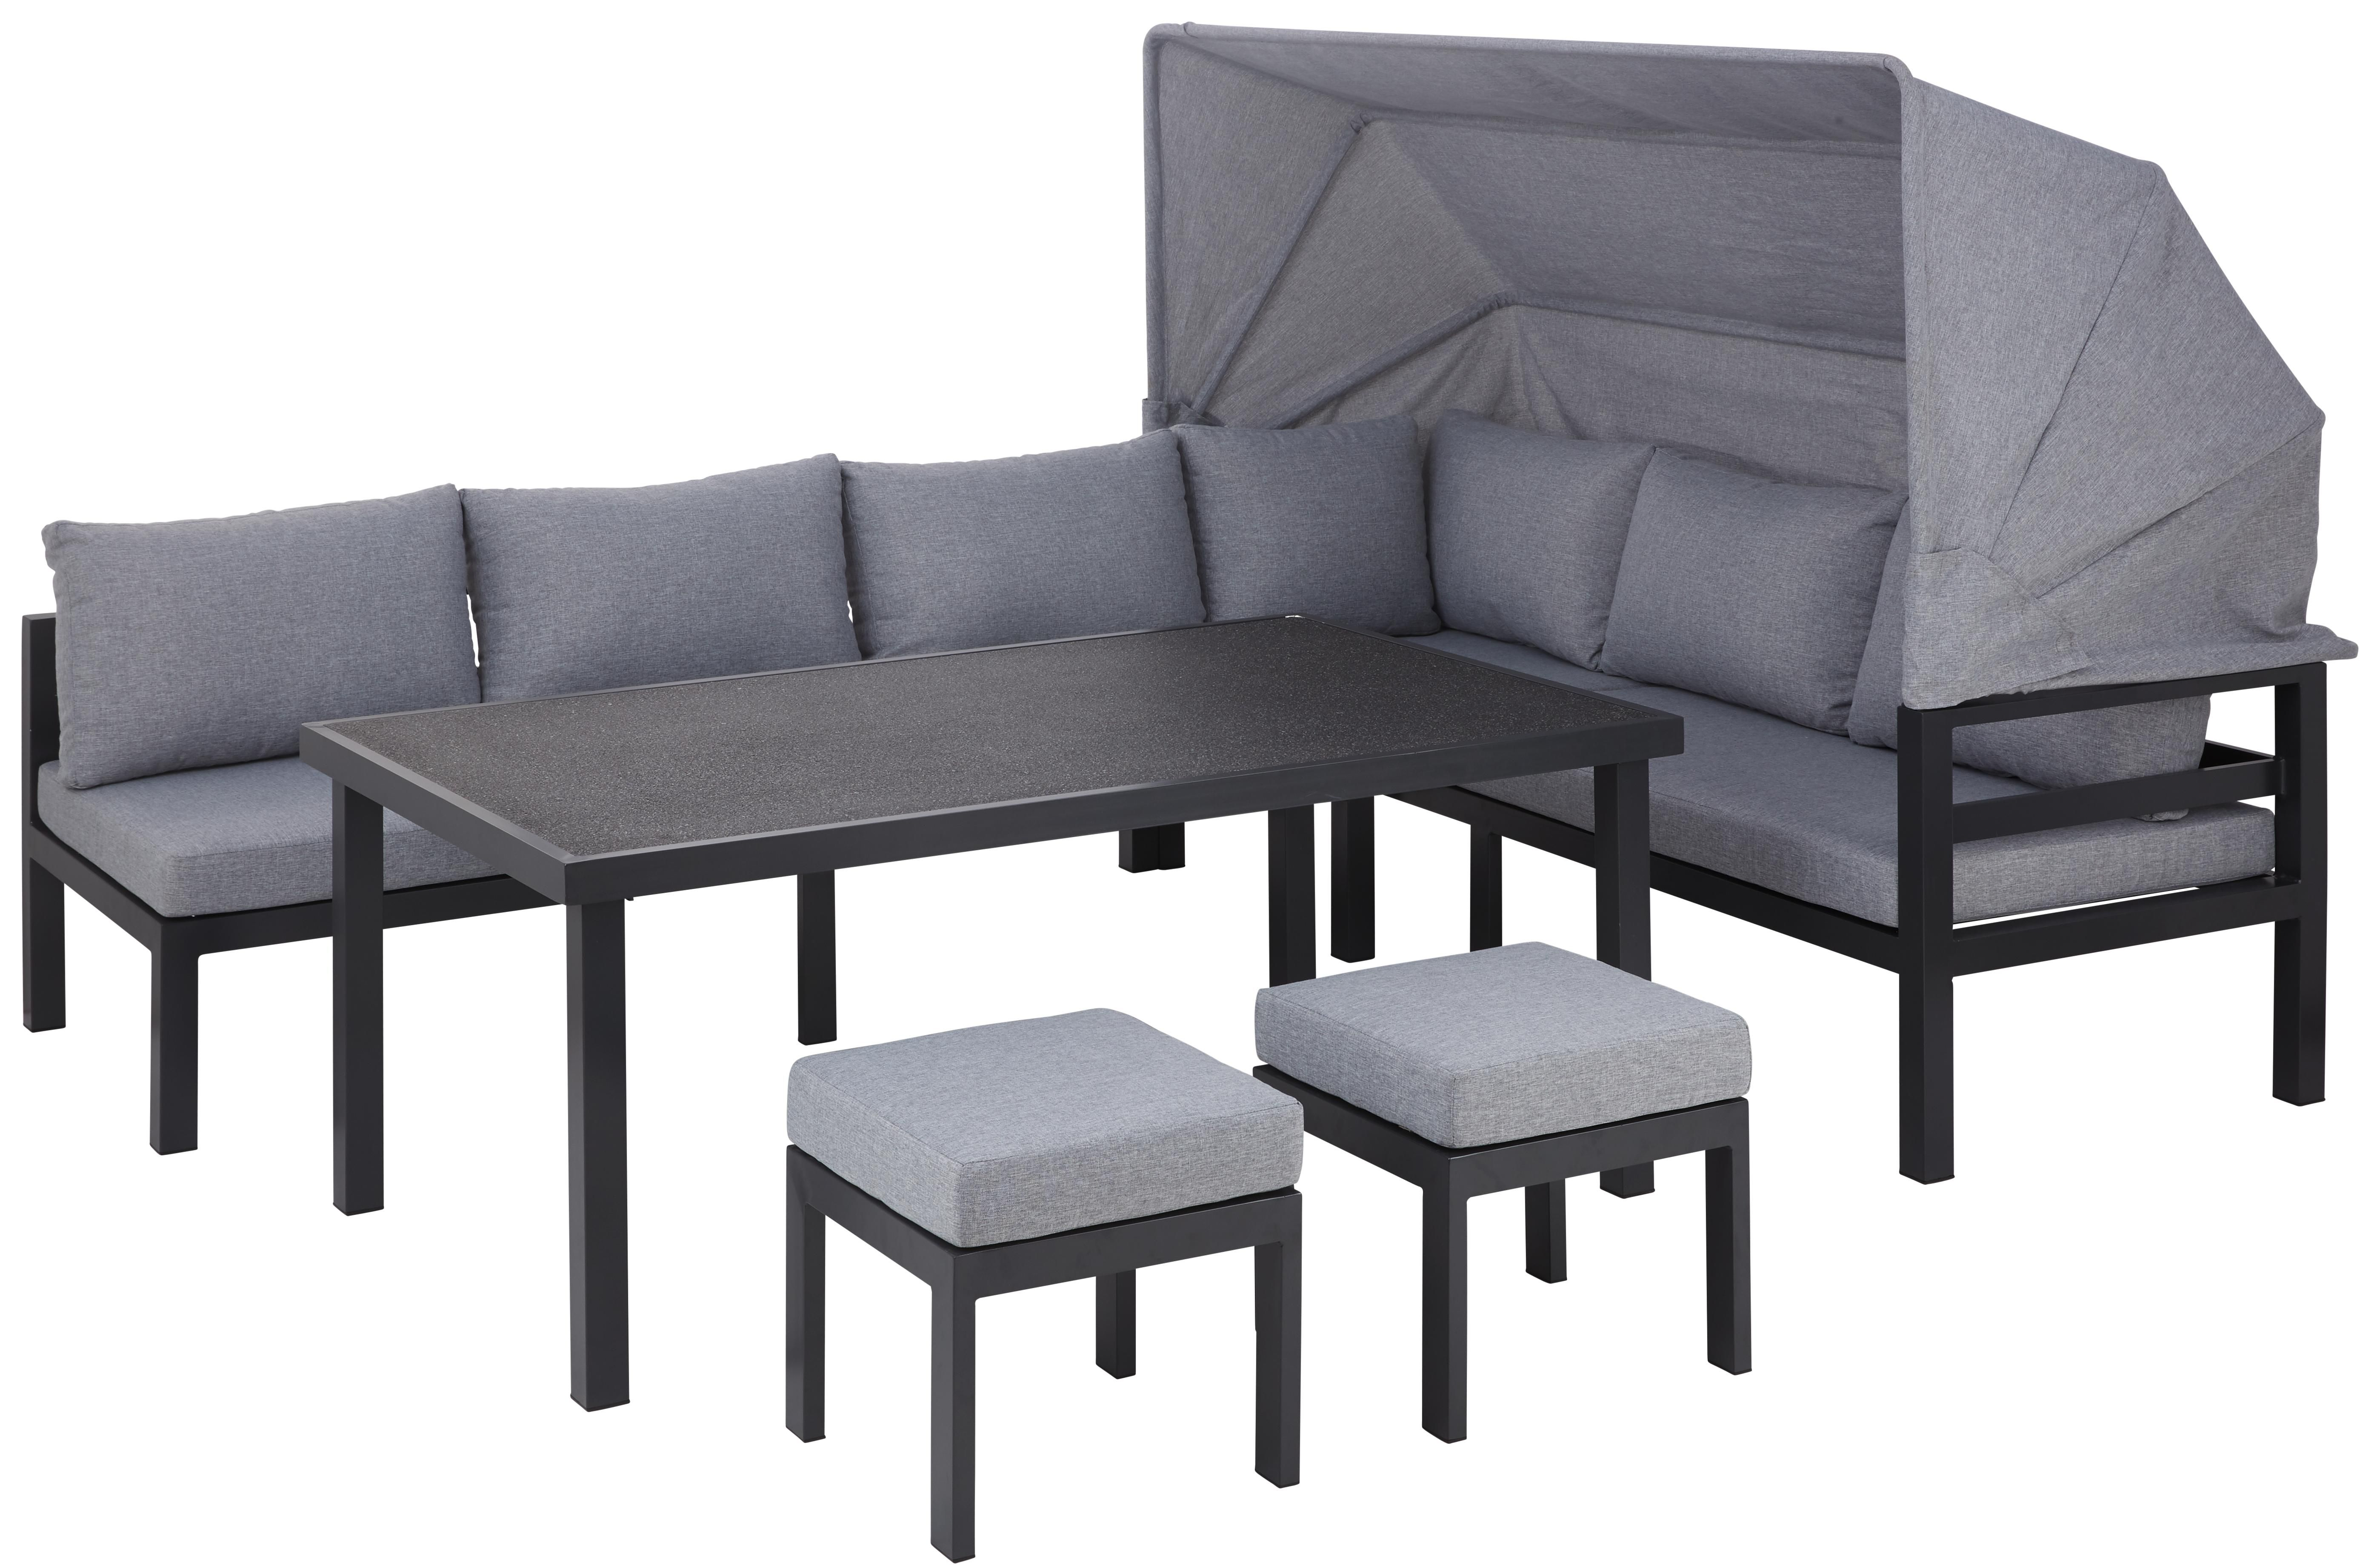 Loungegarnitur 16 Teilig Gartenmobel Garten Draussen Lounge Set Gartenlounge In 2020 Lounge Garnitur Lounge Mobel Lounge